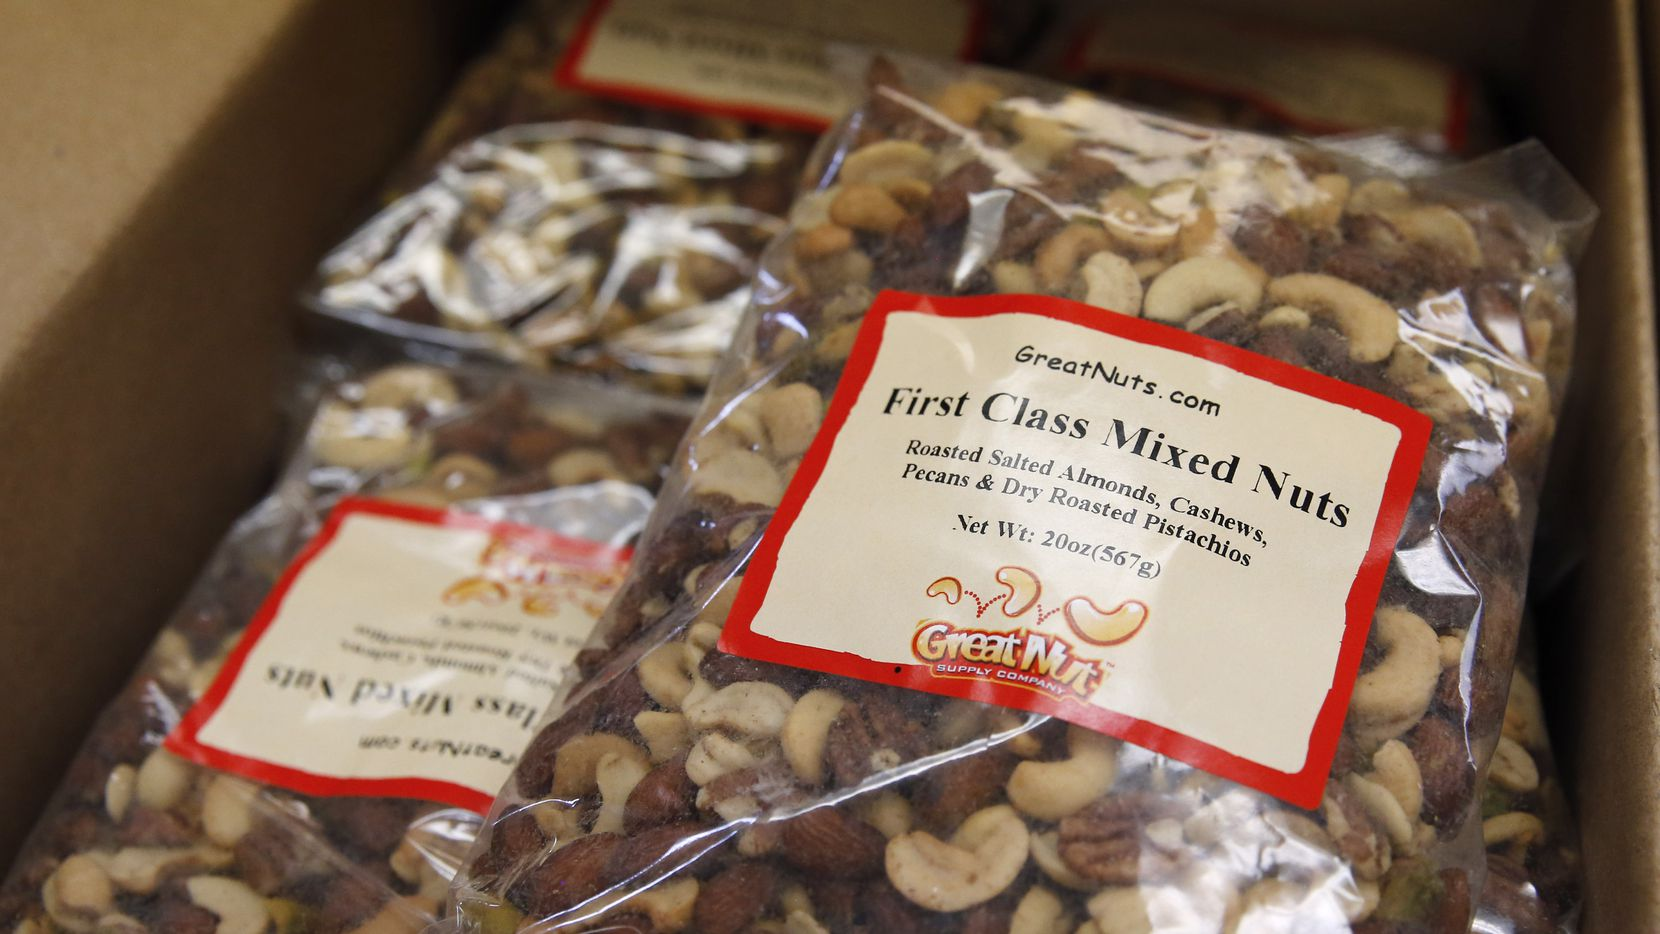 Detail of the First Class Mixed Nuts for sale at GNS Foods in Arlington, Texas on Tuesday, July 28, 2020. GNS Foods sold 12 million pounds of nuts to airlines last year that were dished out warm as a premium service to first class customers, particularly American Airlines. Sales to airlines has dropped dramatically due to the stoppage of serving nuts due to the COVID-19 pandemic. (Vernon Bryant/The Dallas Morning News)